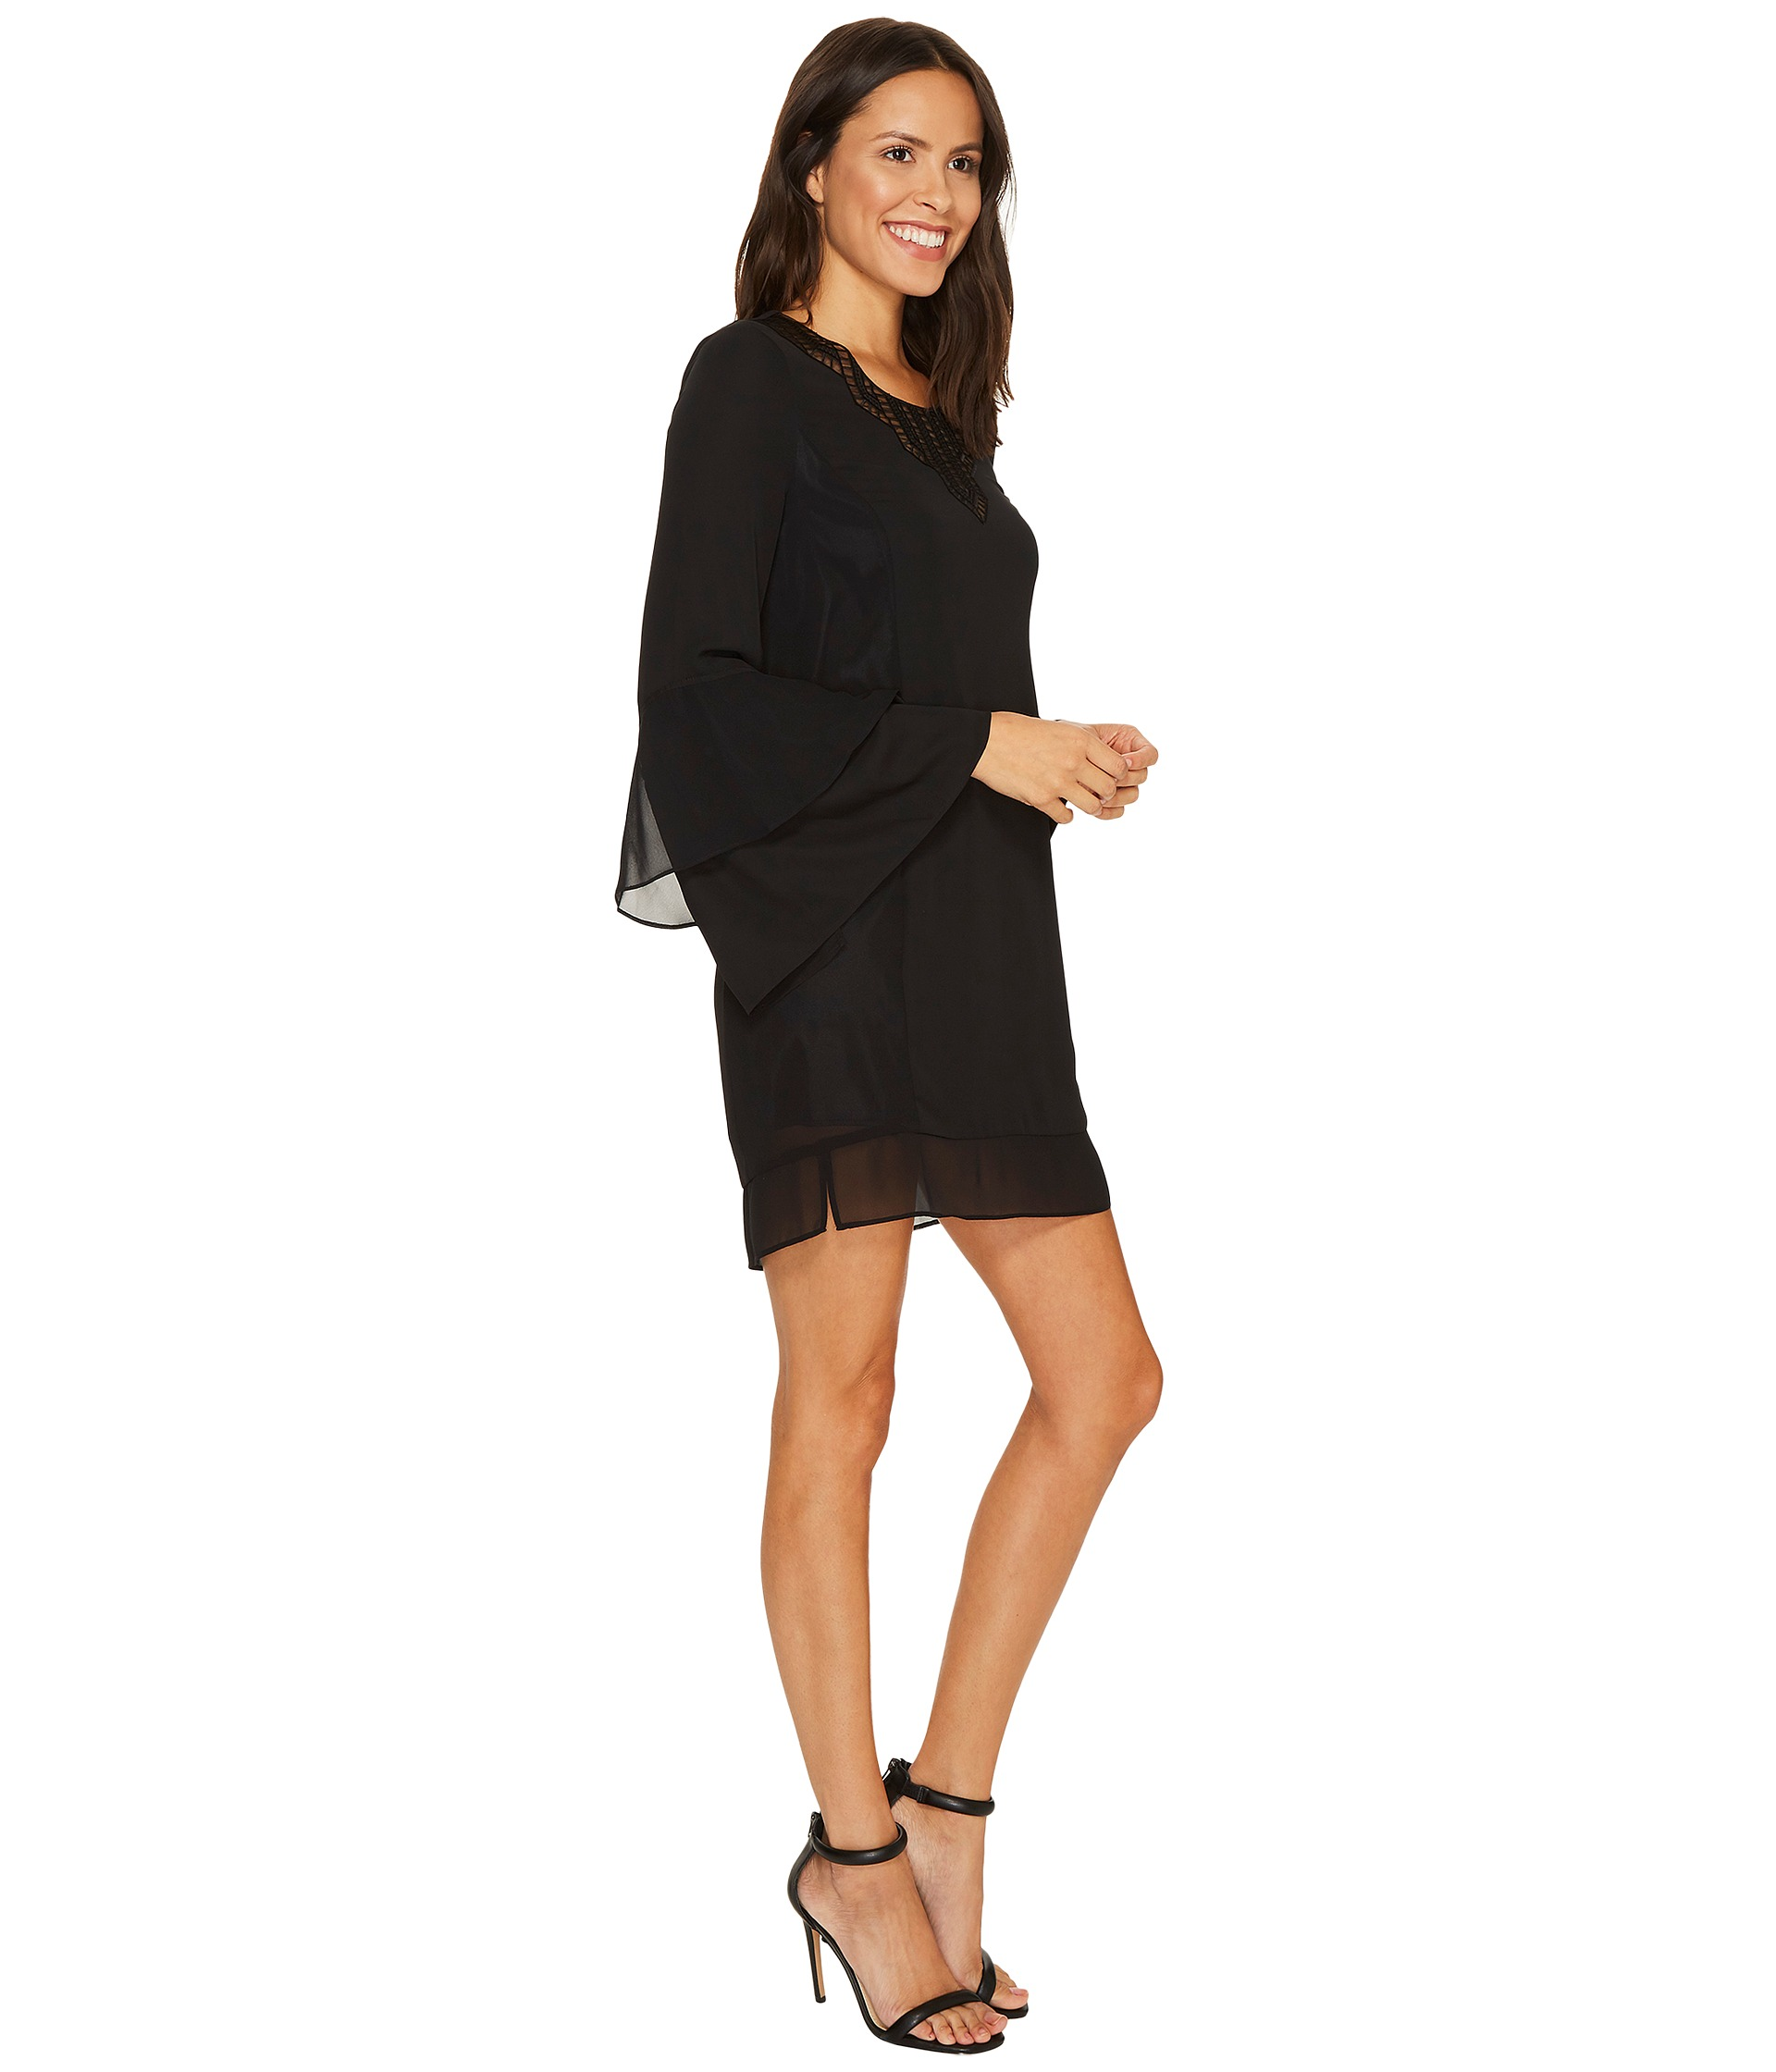 laundry by shelli segal laundry by shelli segal mixed media dress at zappos 12096